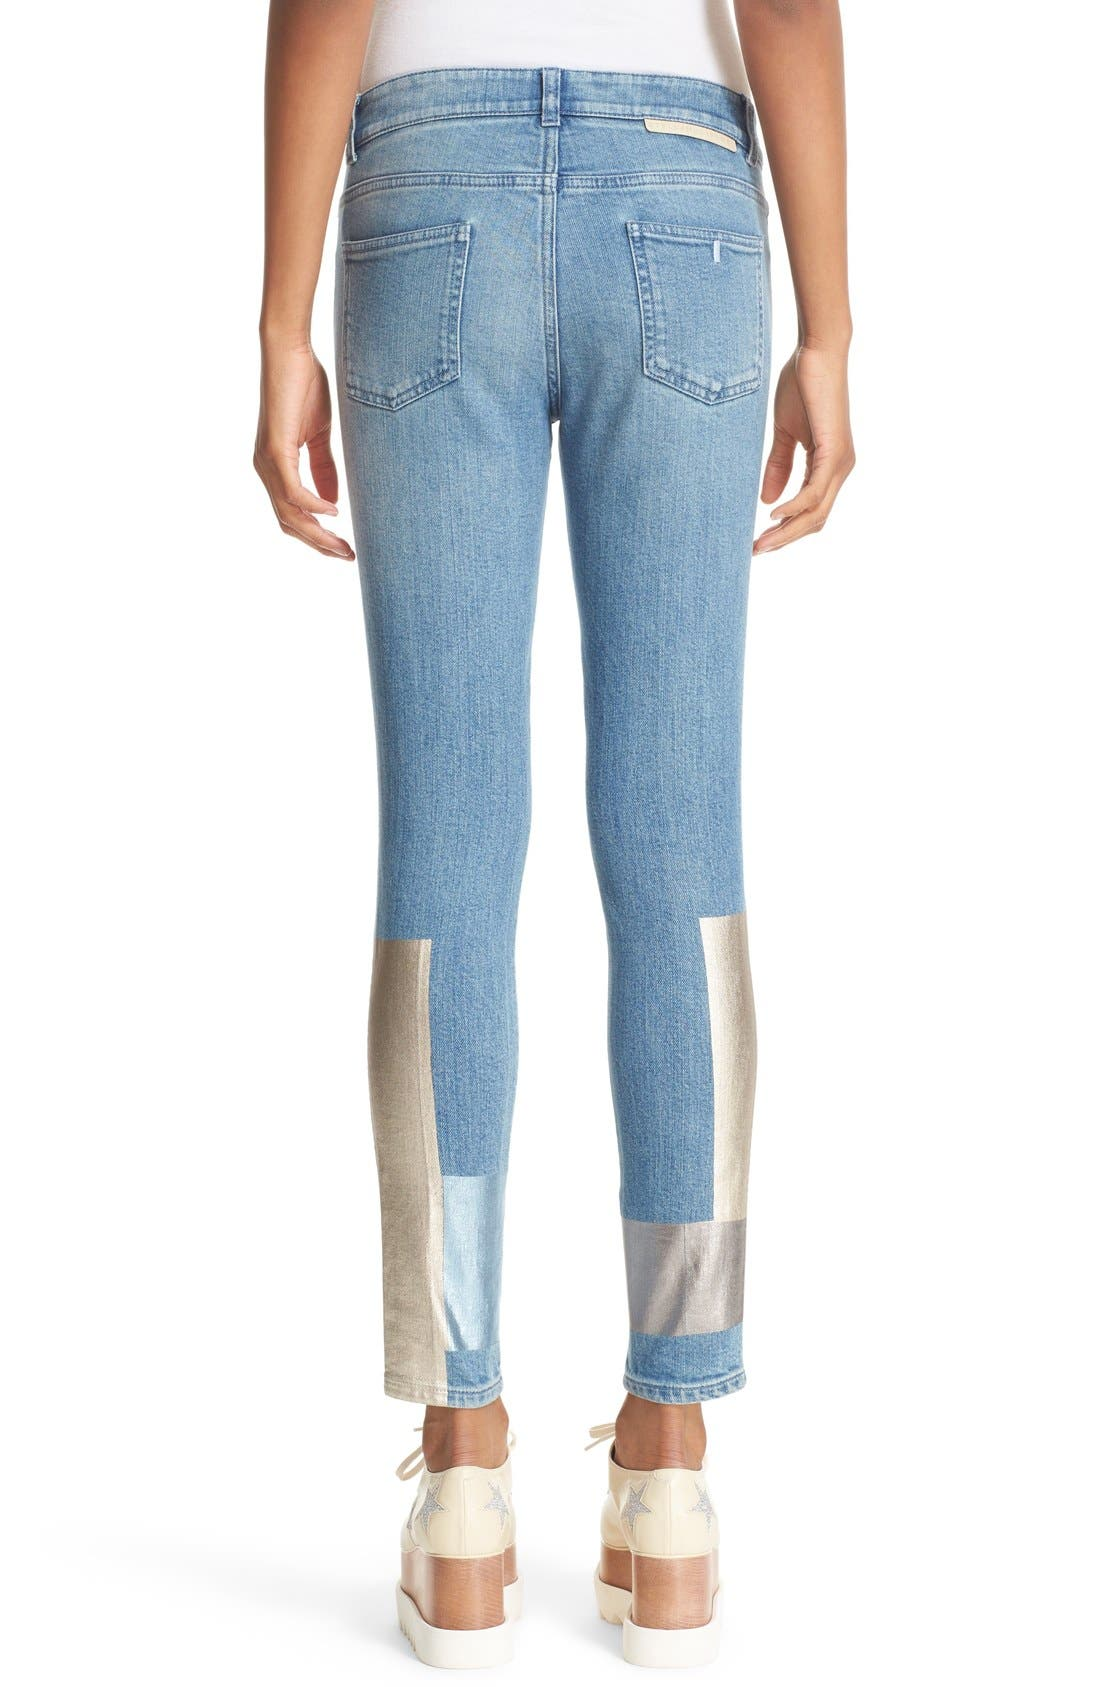 Alternate Image 2  - Stella McCartney Ankle Grazer Skinny Jeans